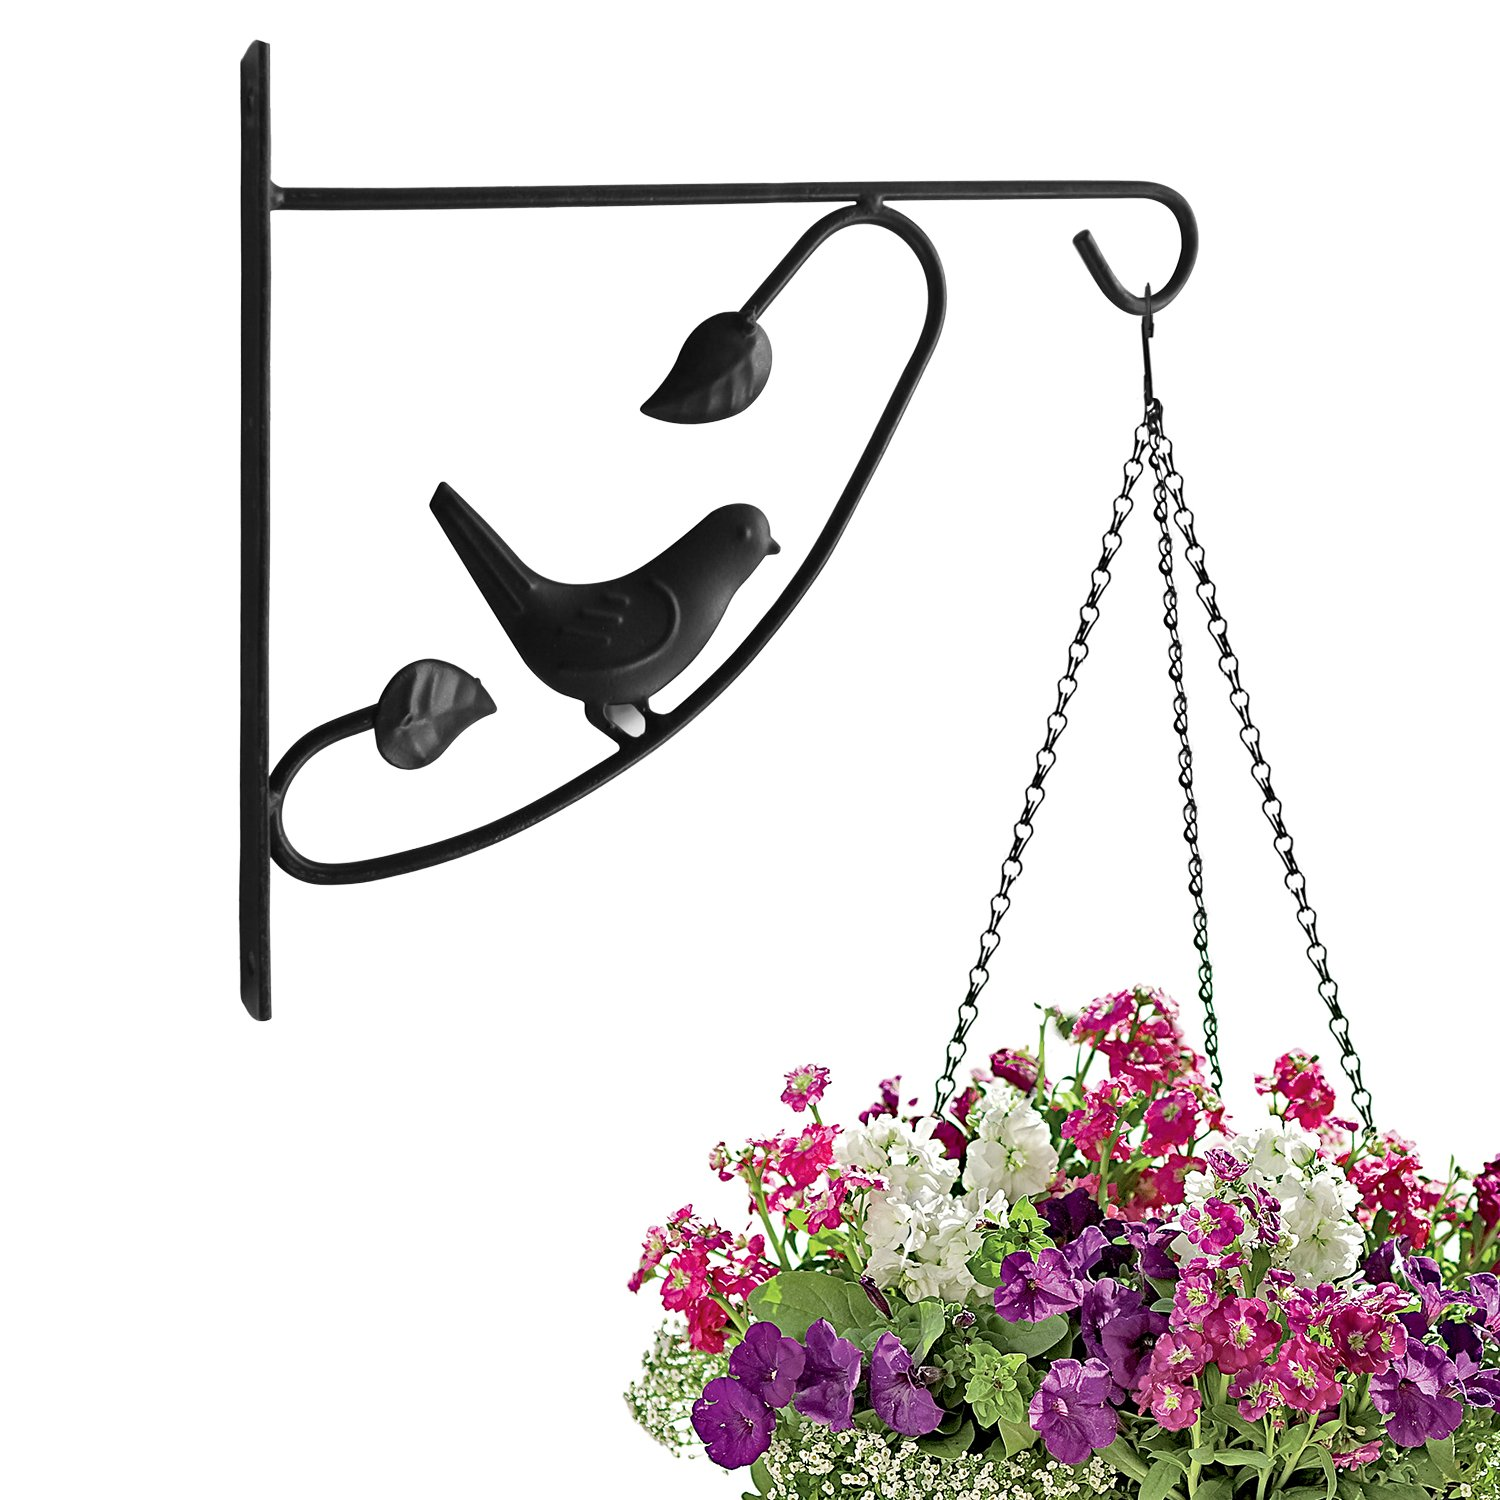 Amagabeli 12'' hanging plant hooks forged mount against door fence deck garage balcony outdoor lawn cast iron bracket for planters bird feeder lanterns wind chimes plant pot basket with screw